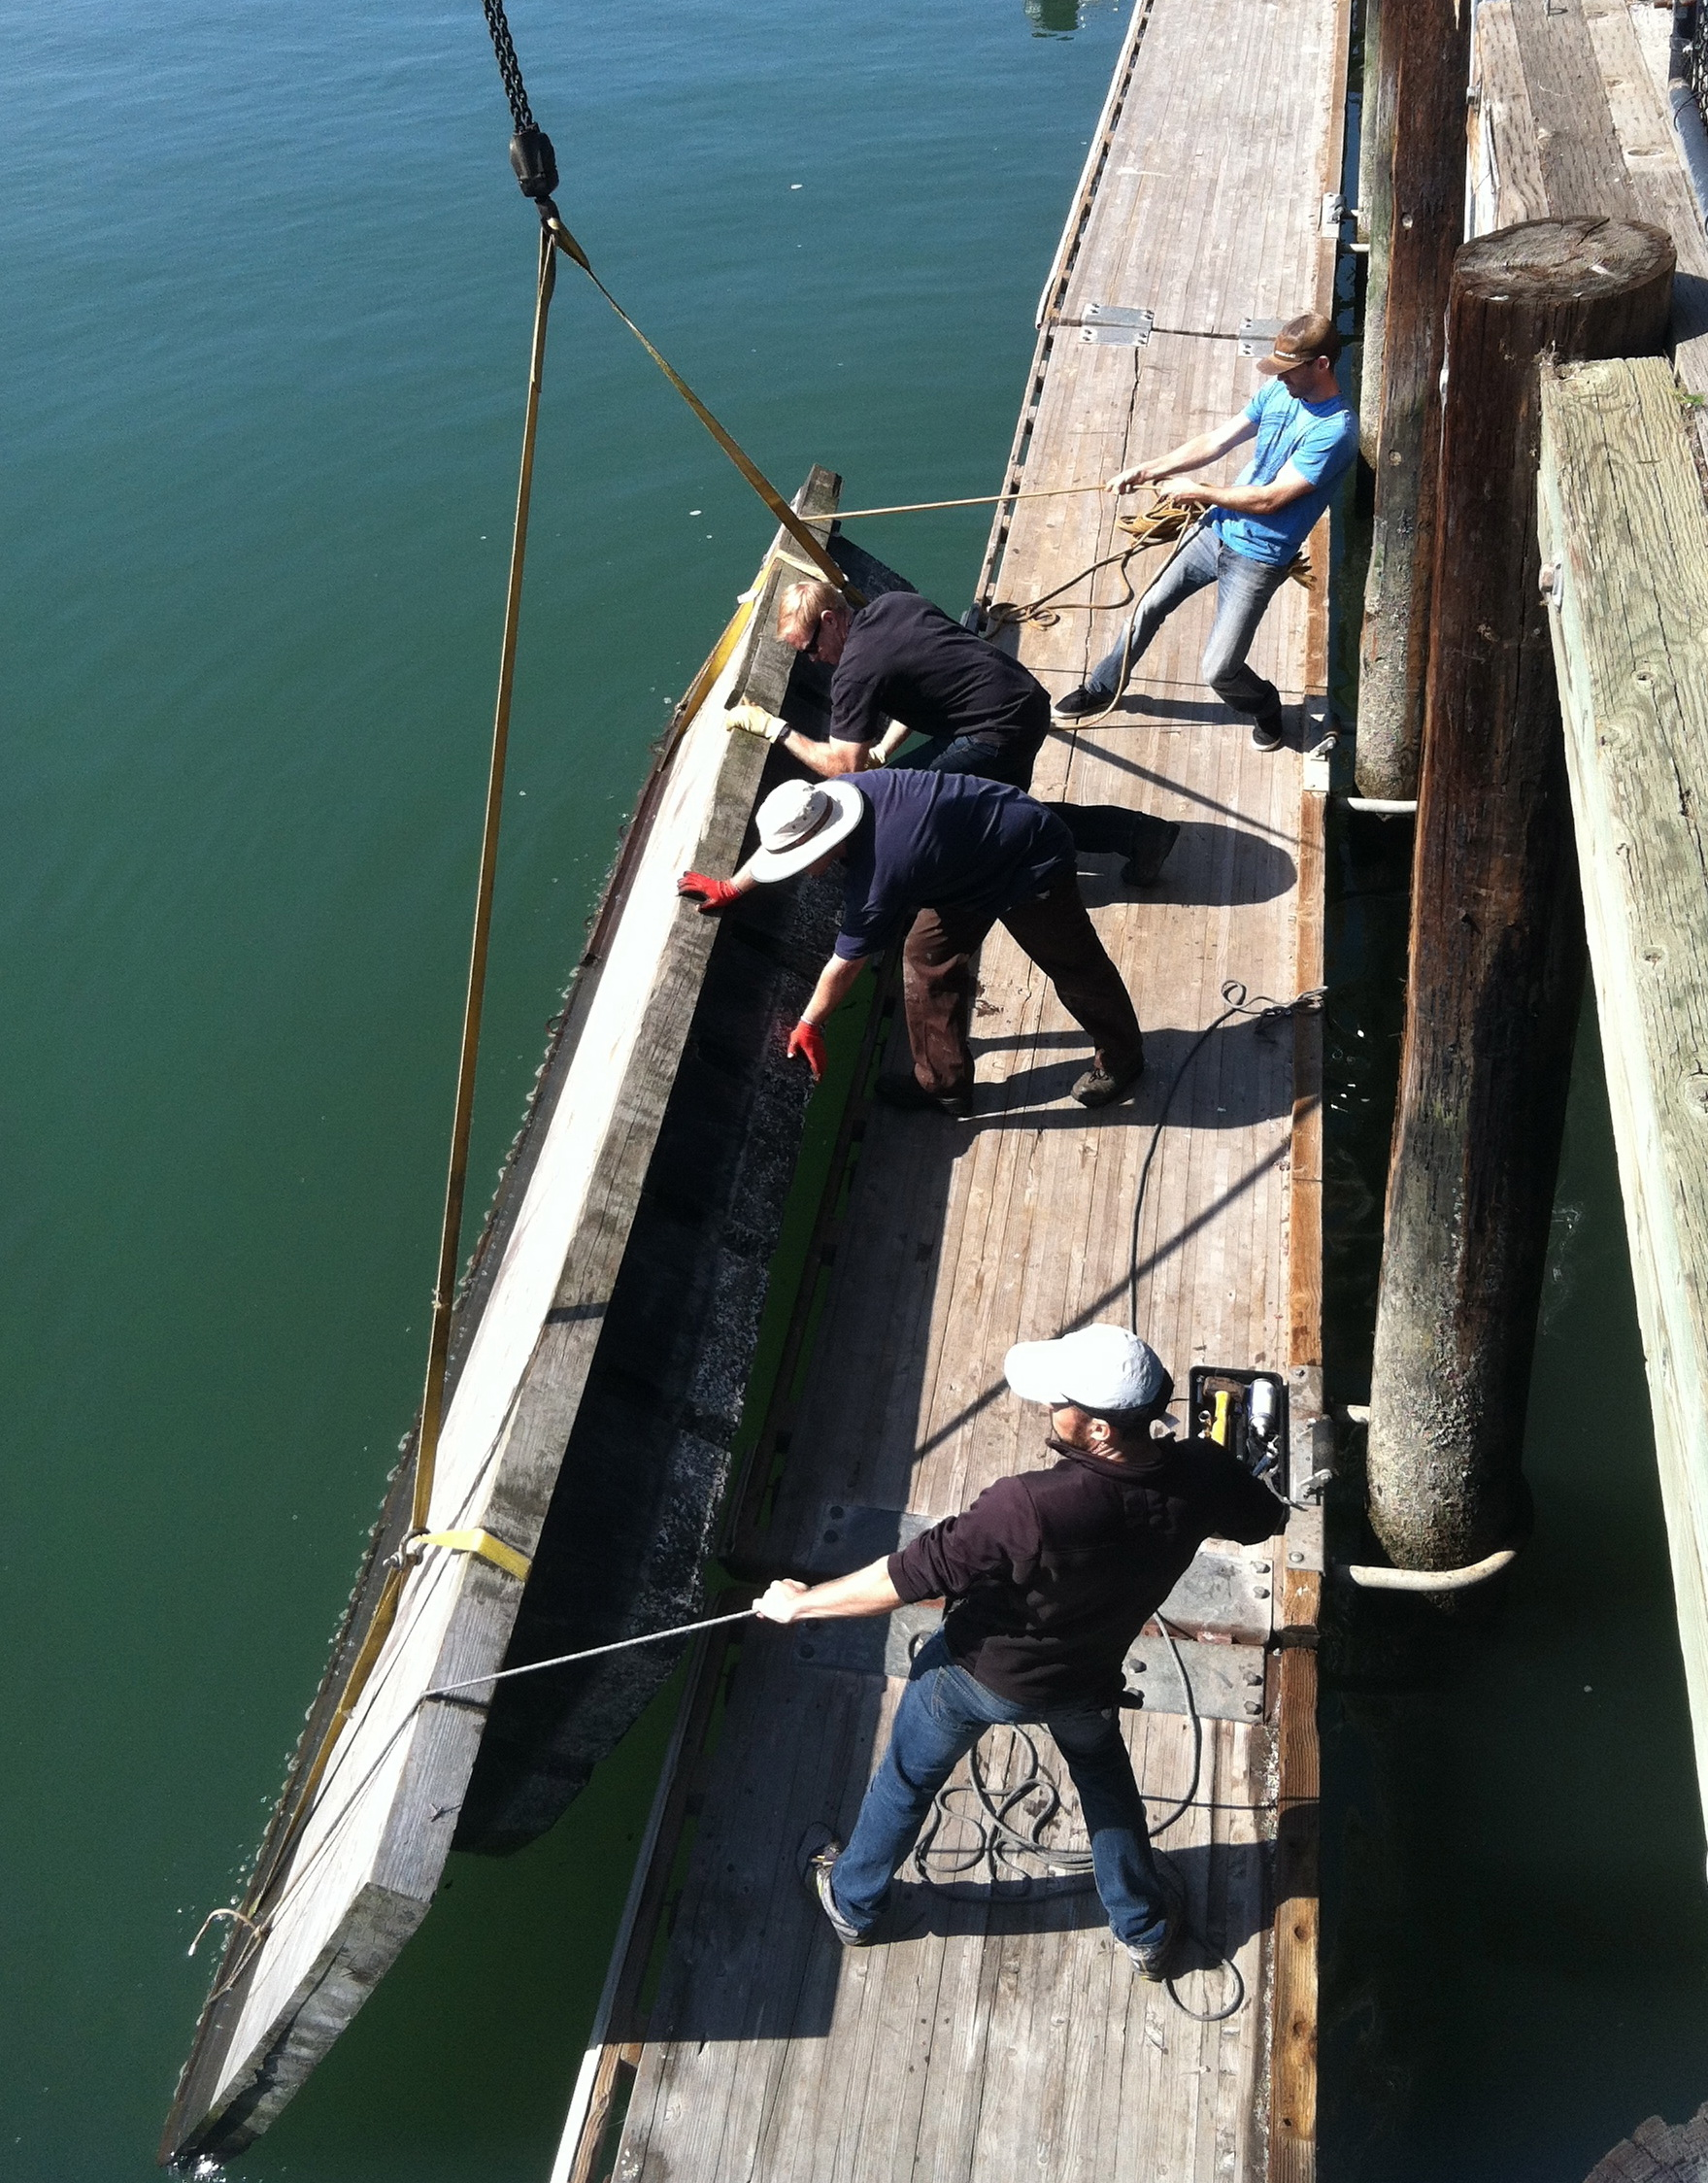 tisc teaches life lessons like teamwork for example onclippercove dockinstall team teamwork lowering dock section